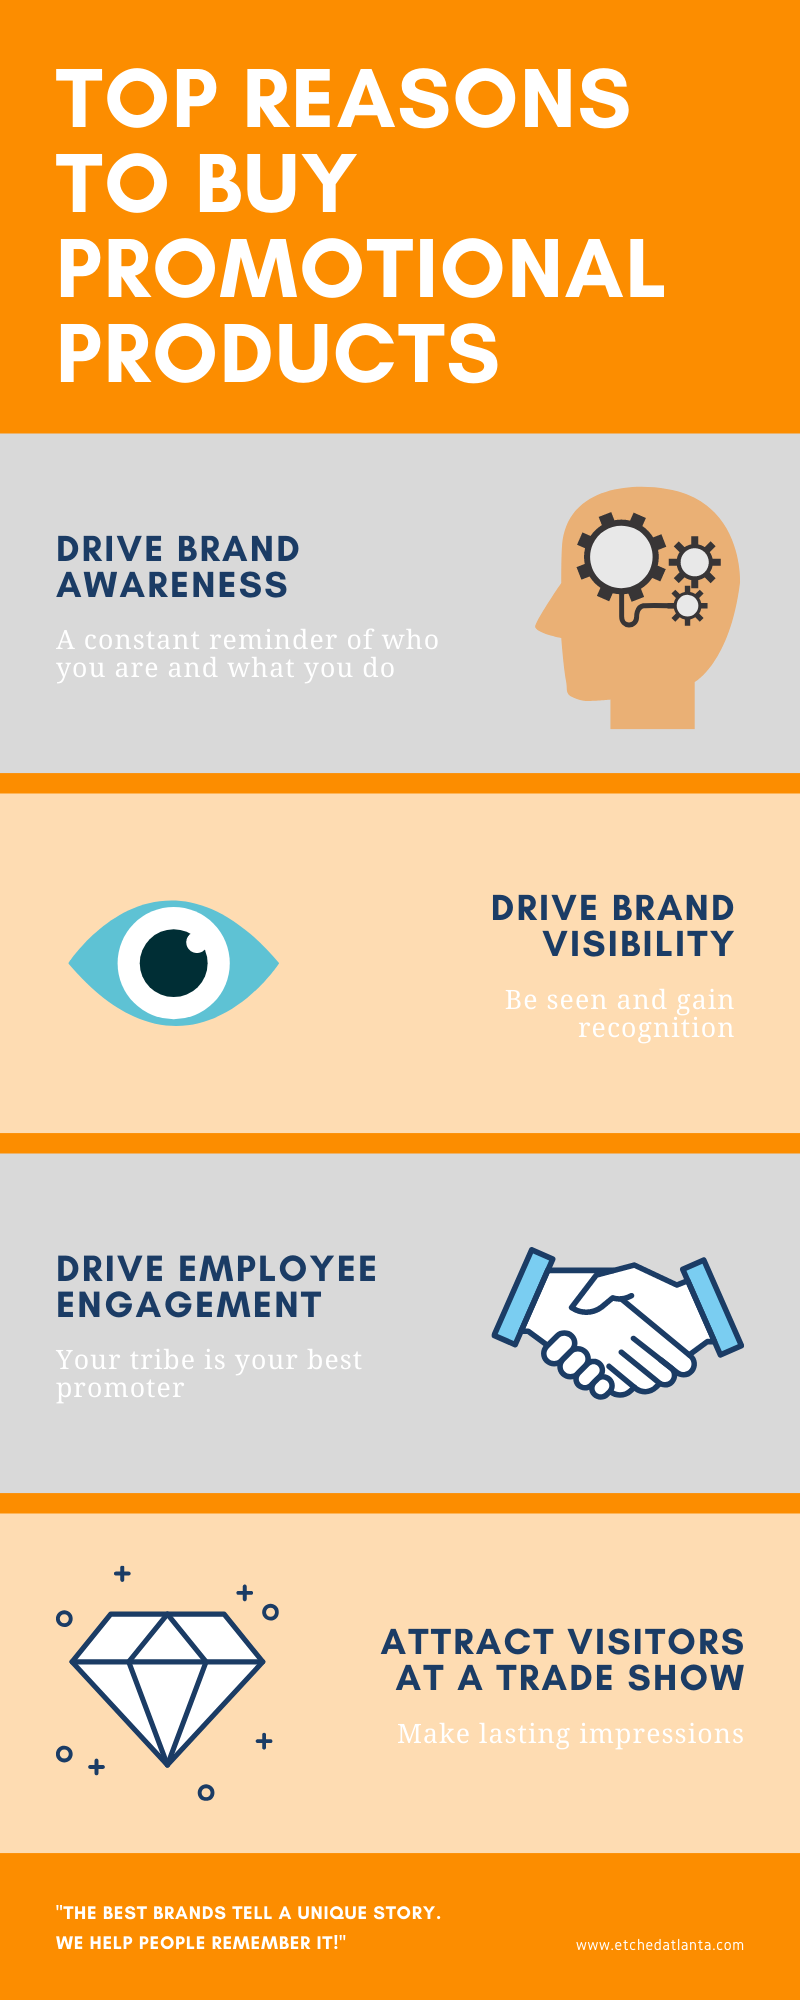 Info-graphic: Top reasons to buy promotional products